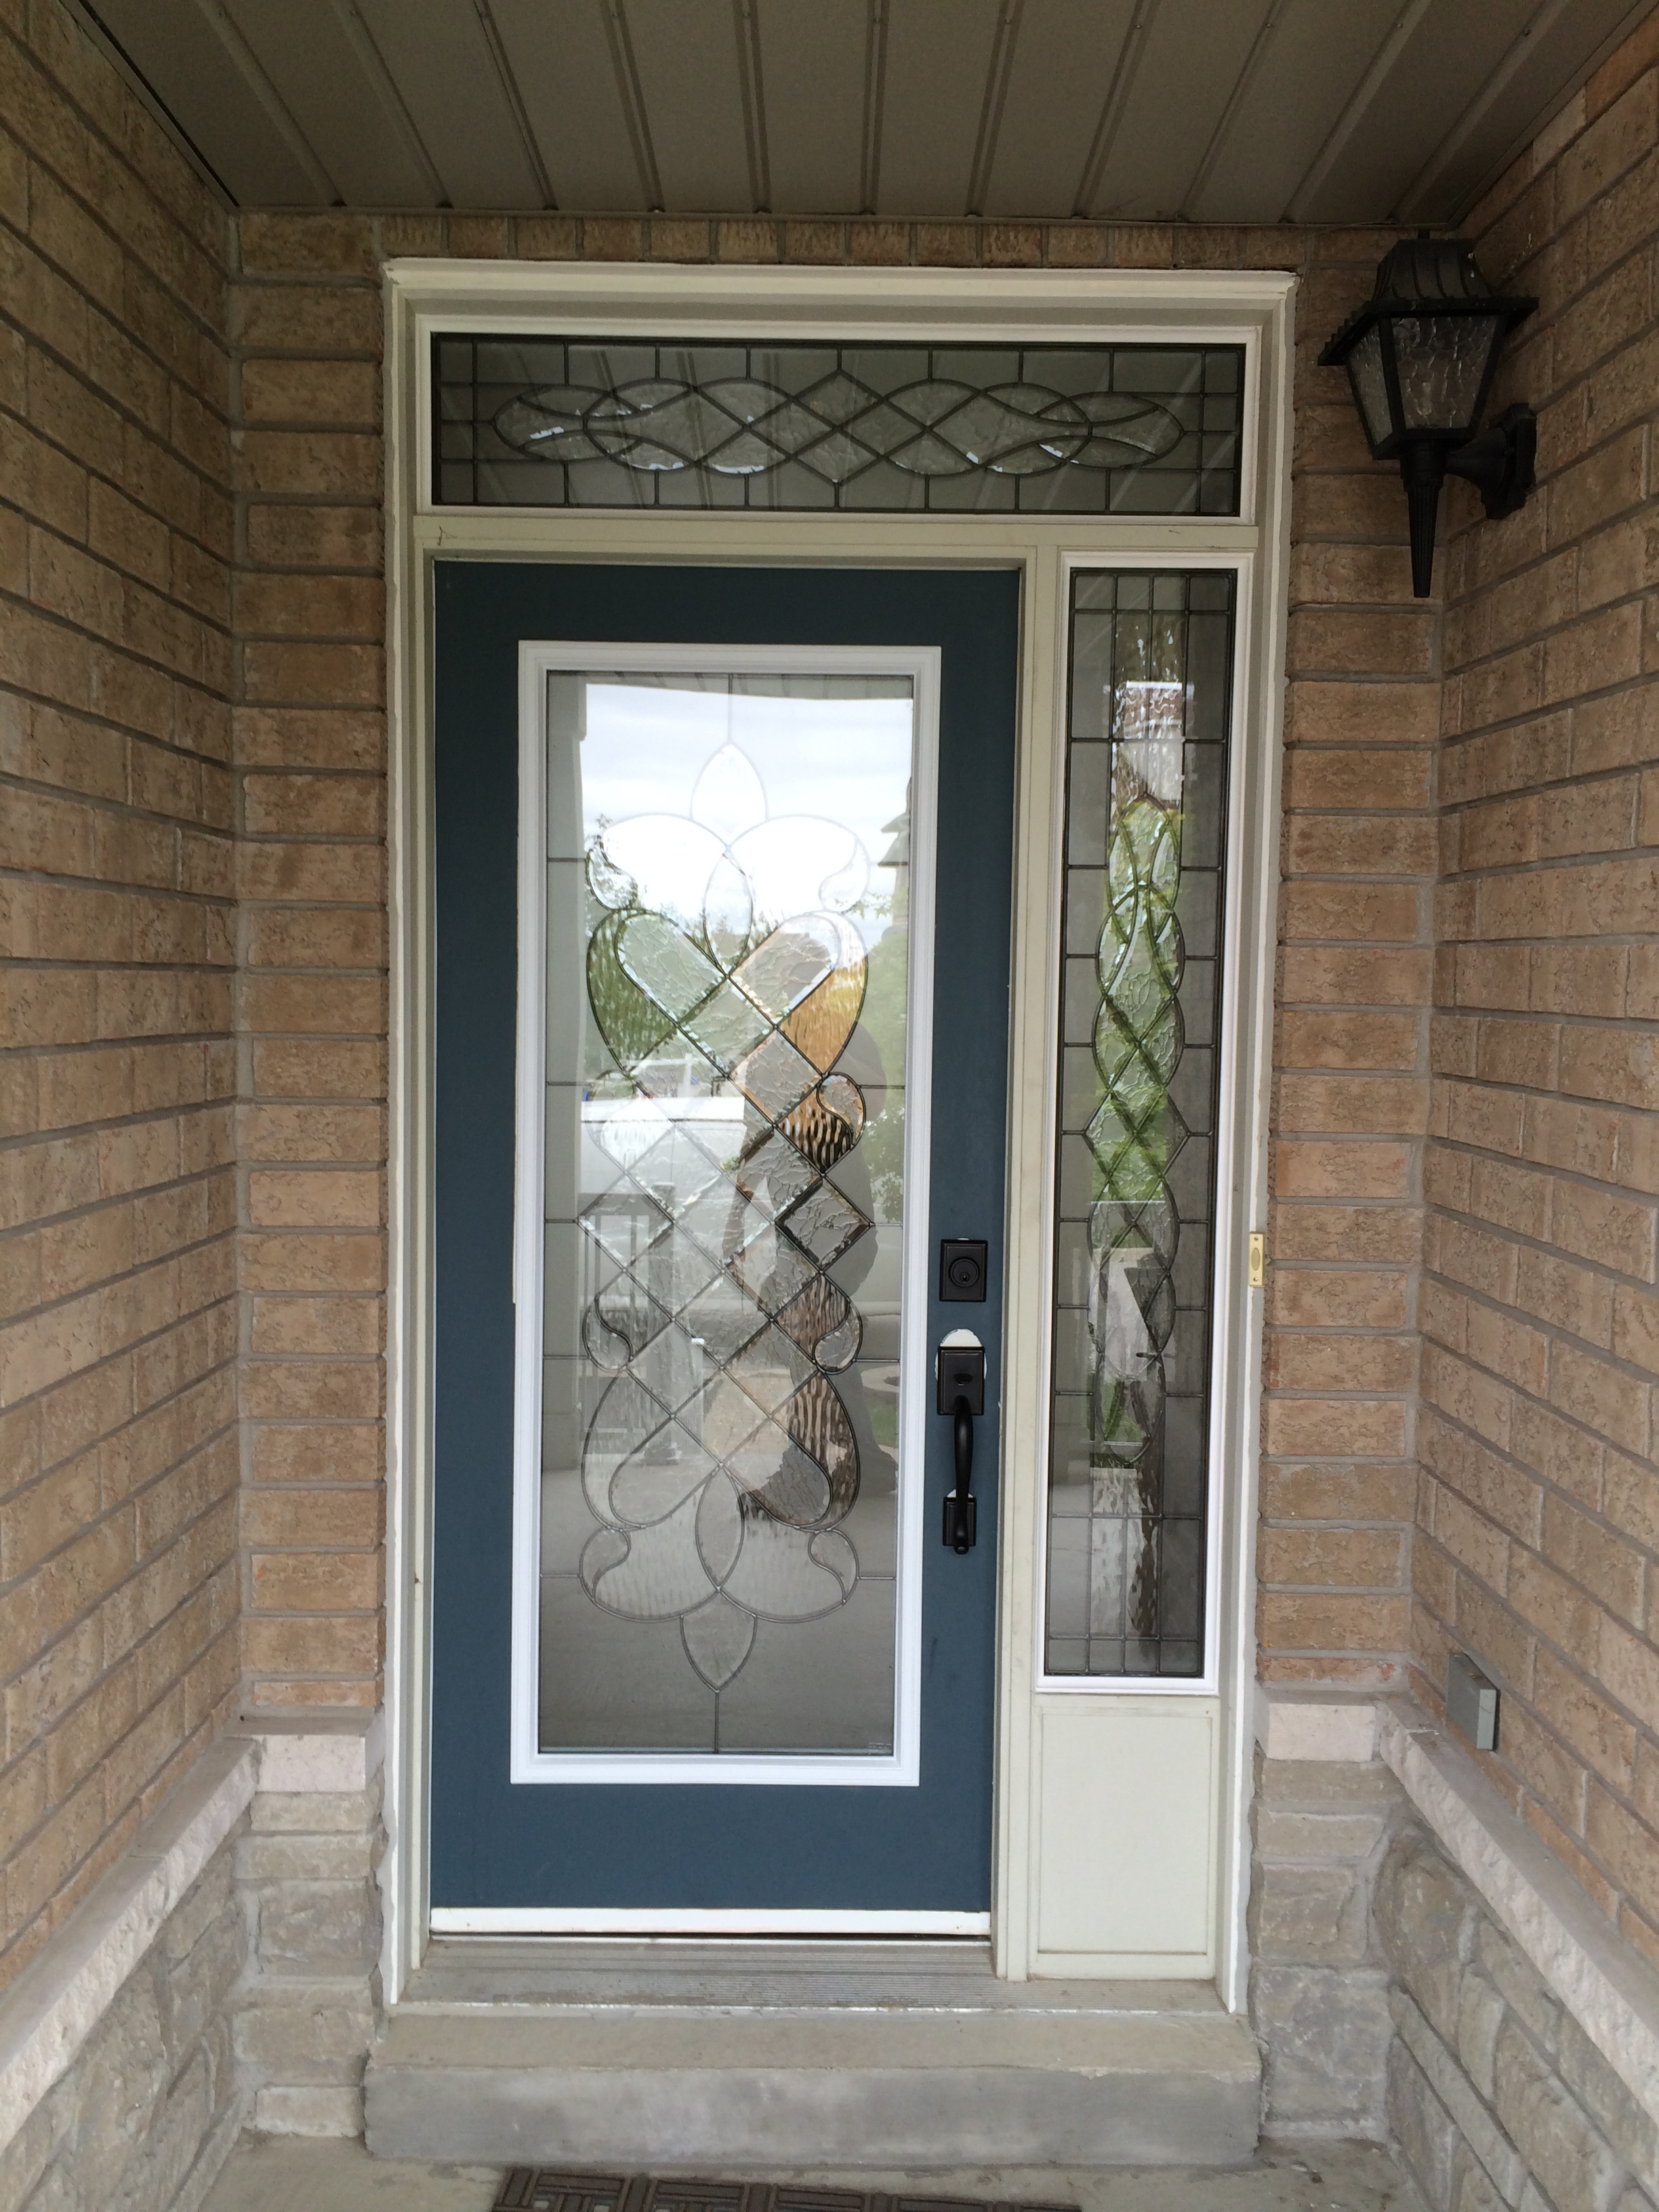 Middlesborough-Decorative-Glass-Door-Insert-Installtion